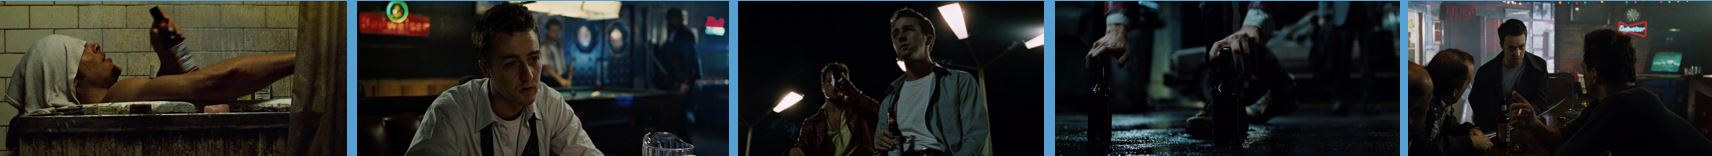 concave brand tracking product placement fight club david fincher edward norton brad pitt entertainment marketing branded integration budweiser